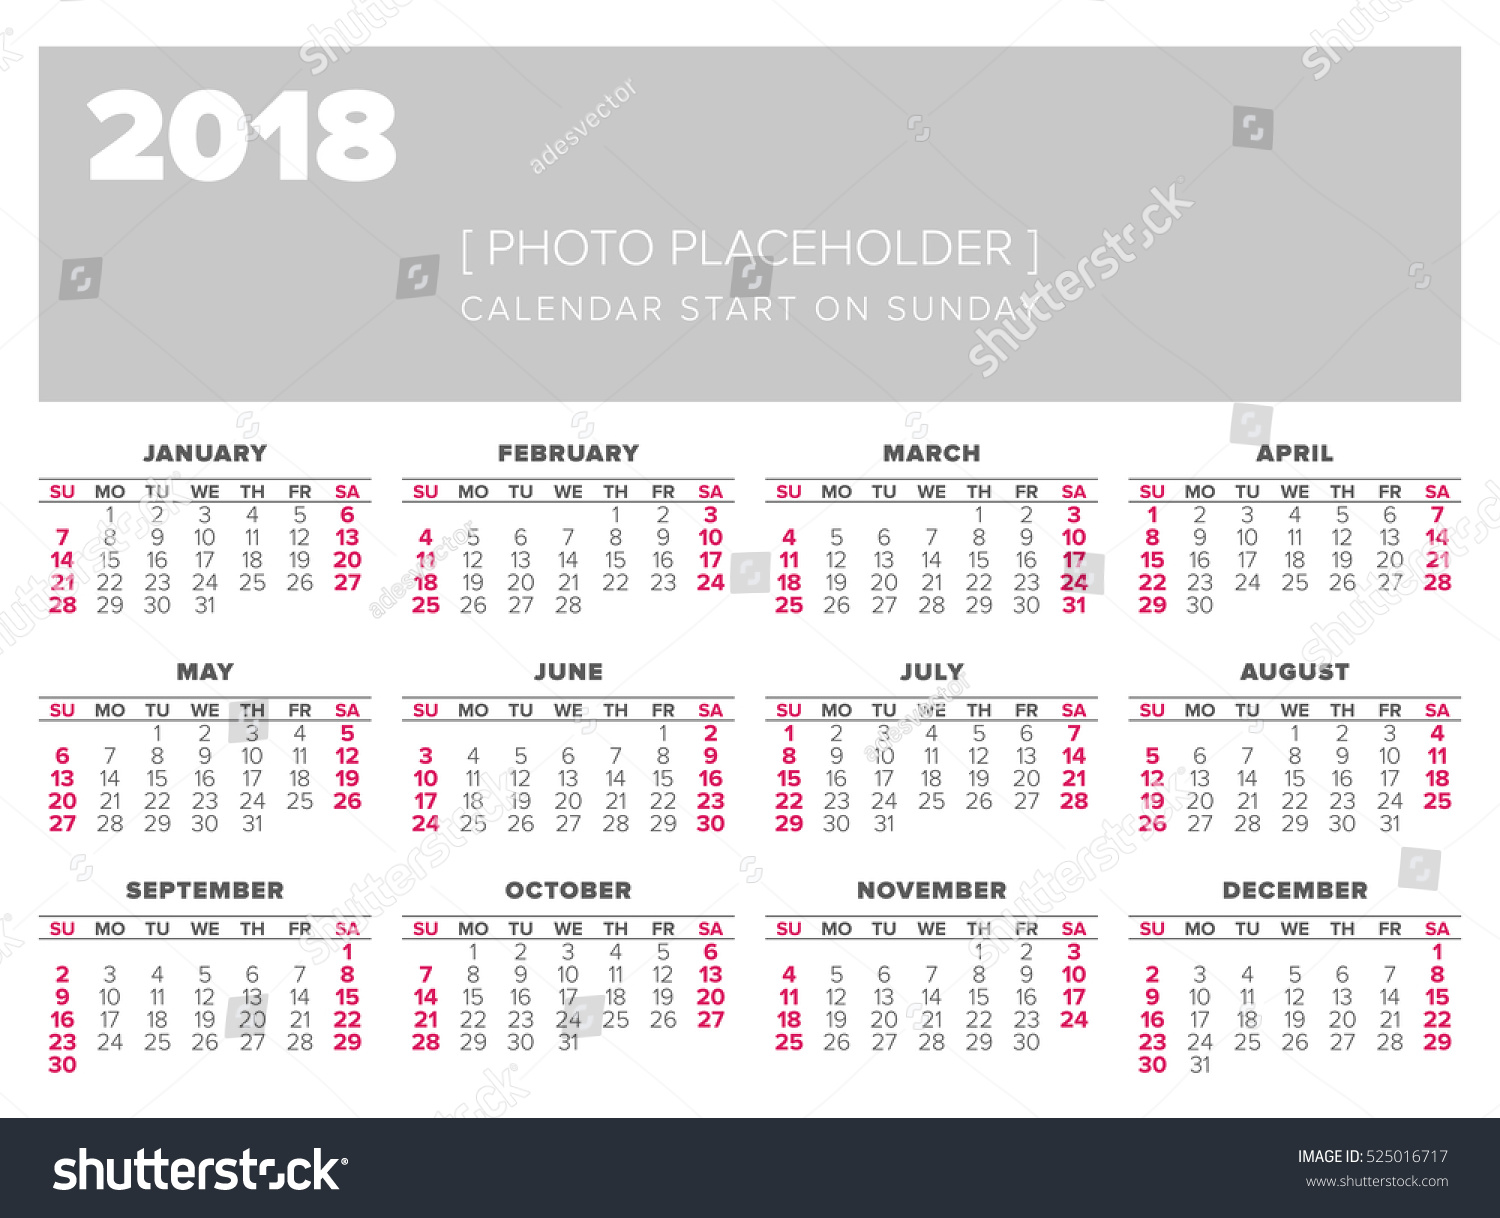 Year Calendar Starting : Simple year calendar start on sunday stock vector